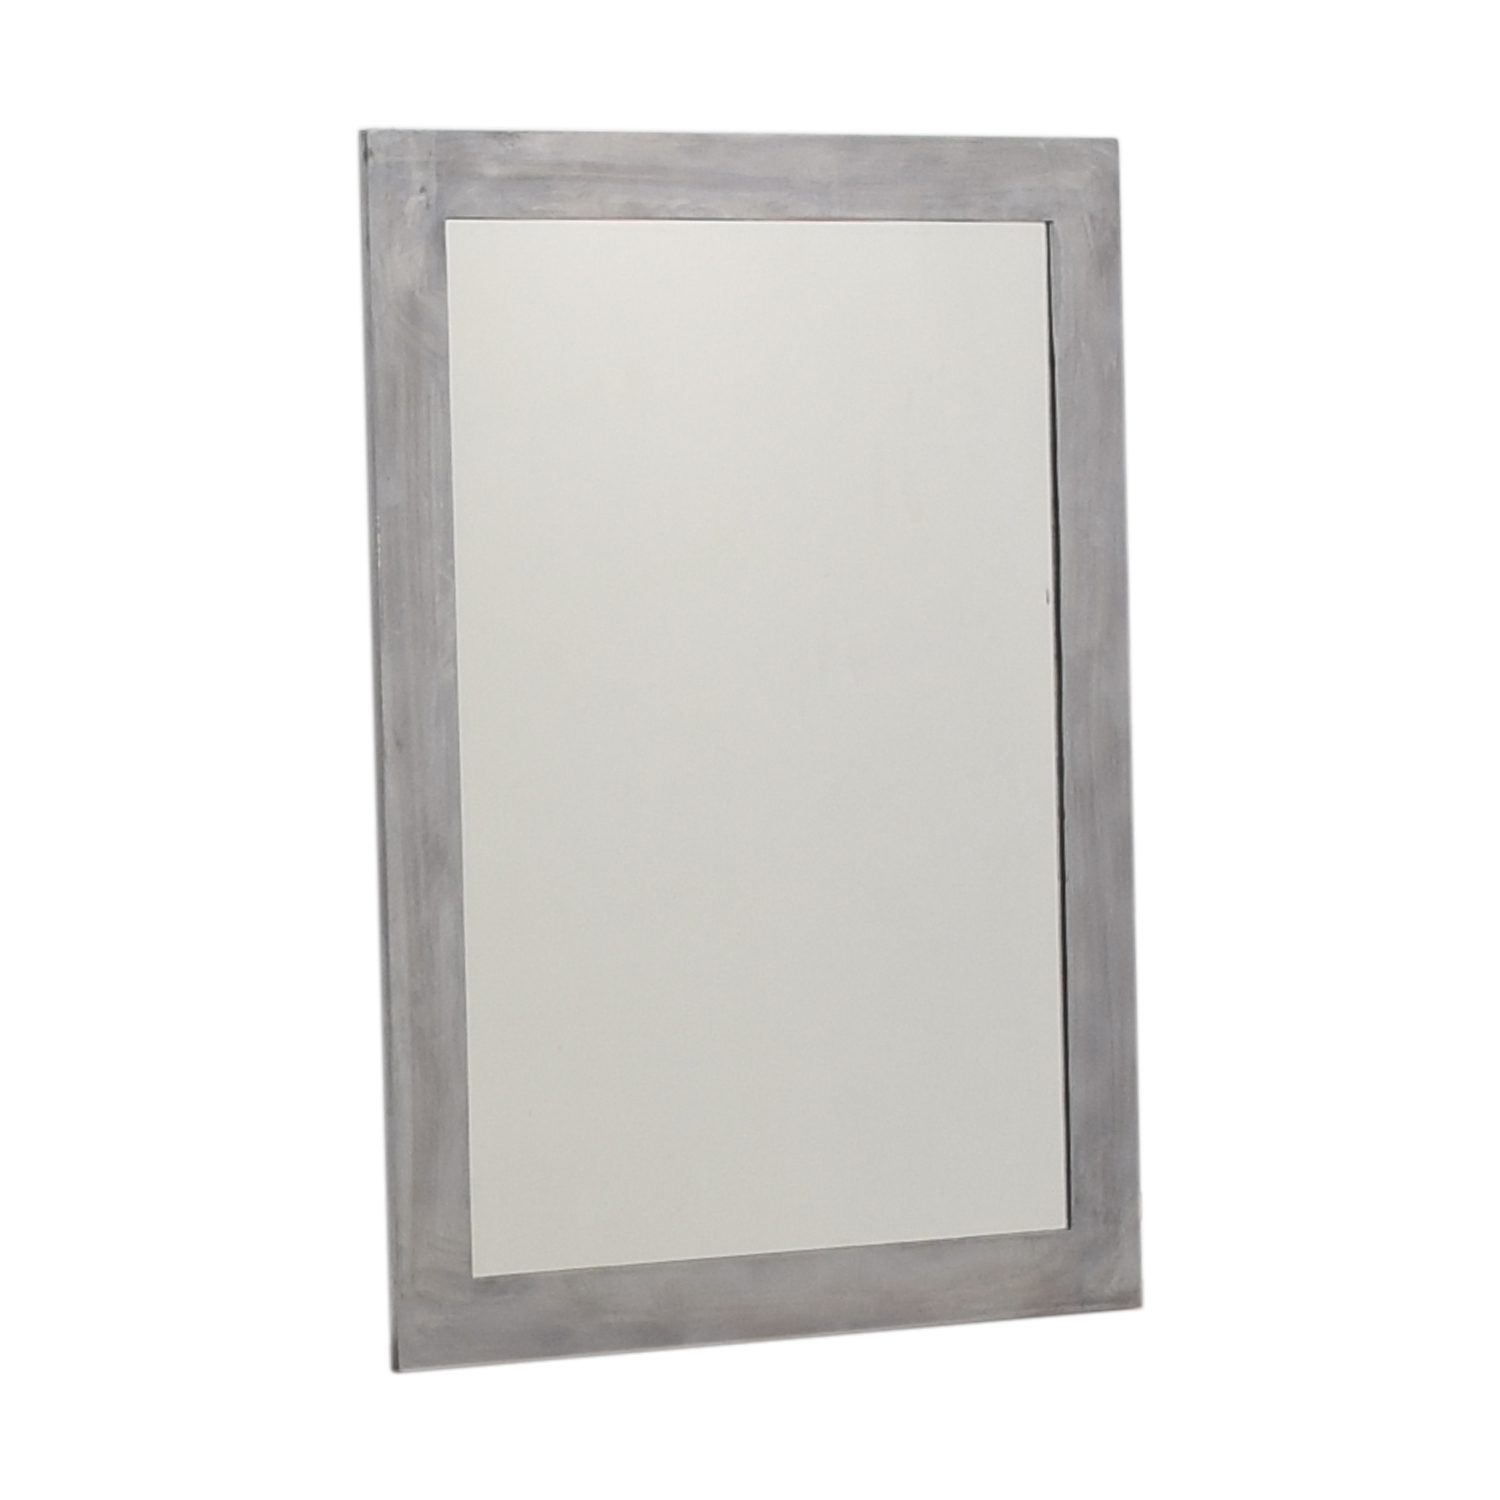 Silver Framed Wall Mirror Silver